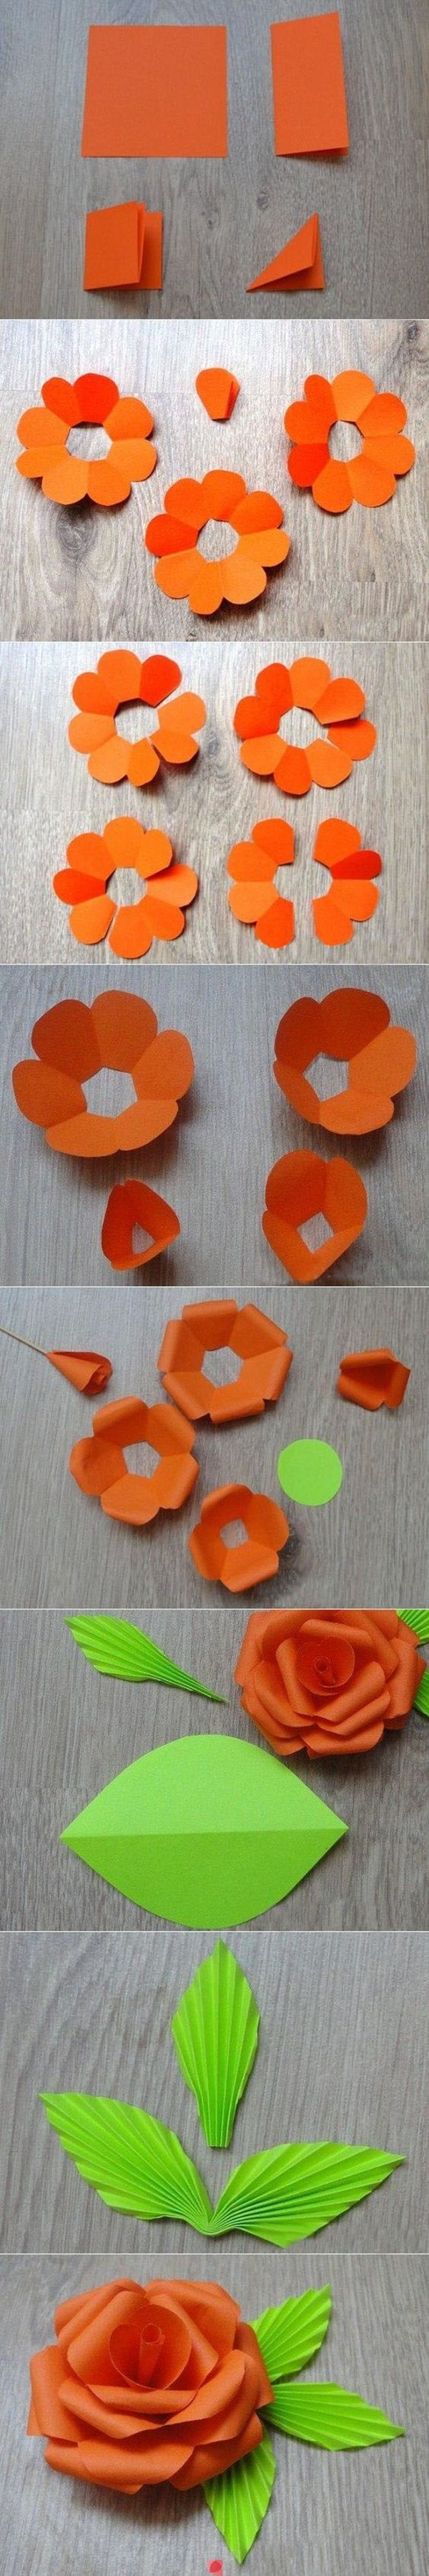 Valentines Day Crafts for Kids10